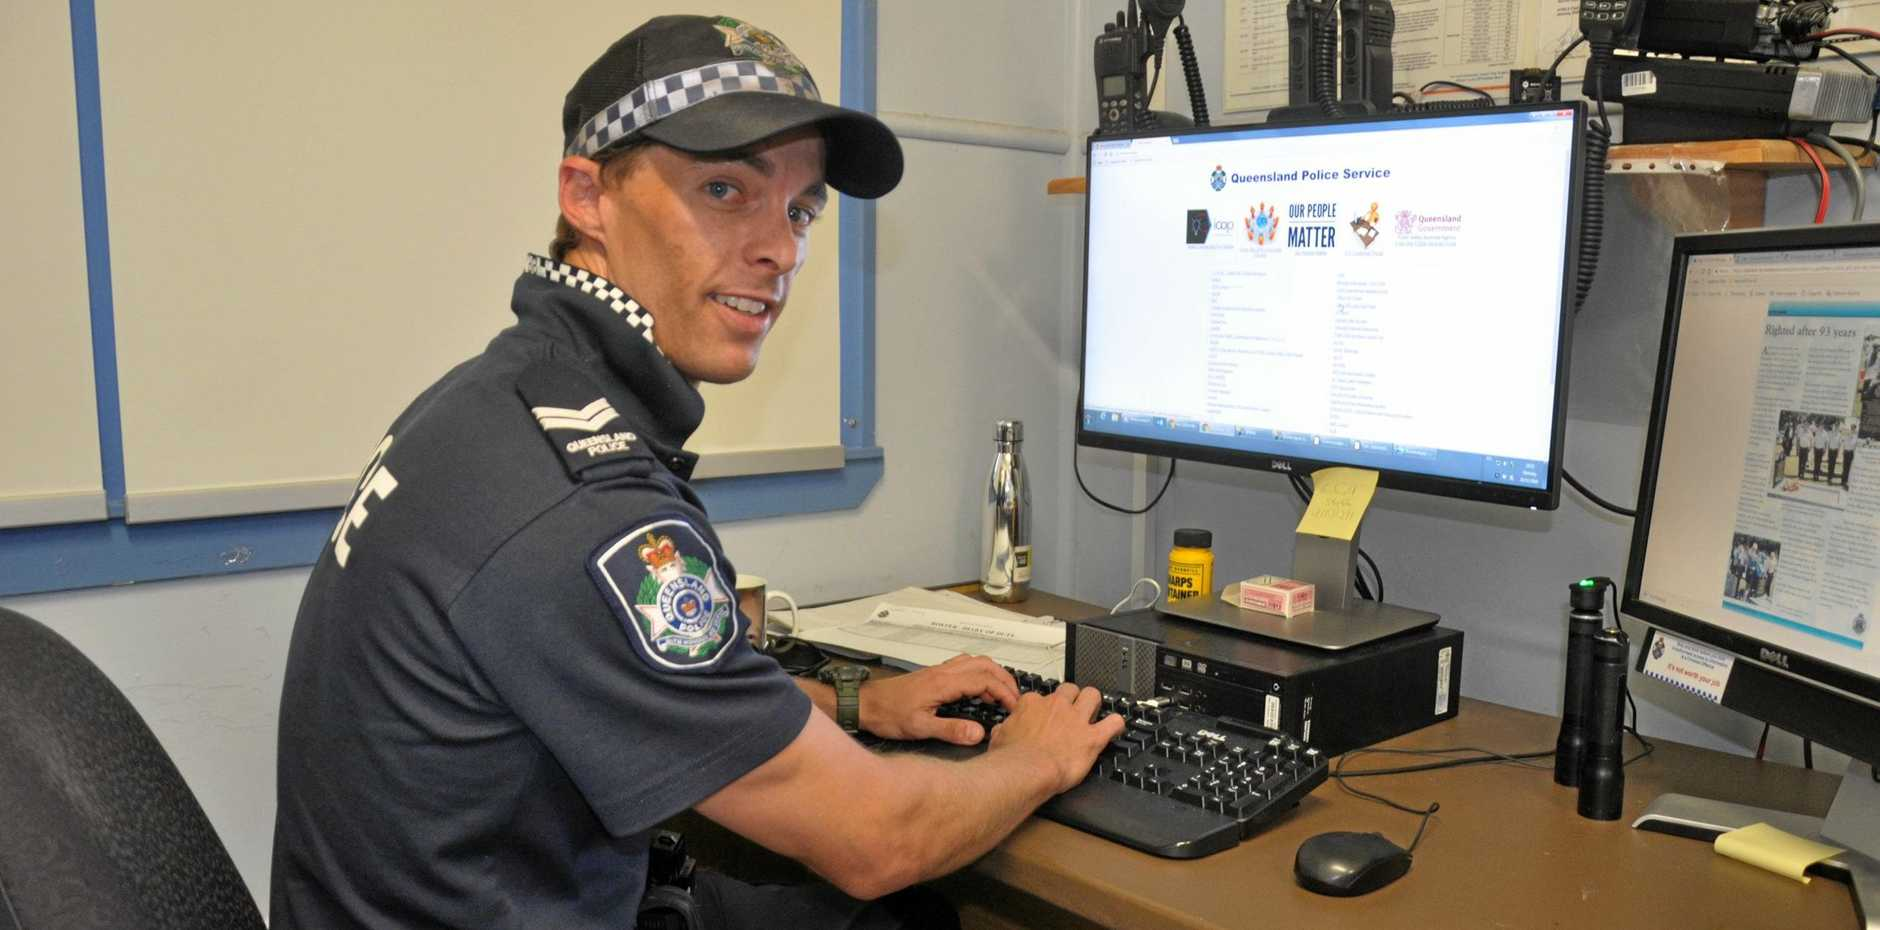 KEEPING THE PEACE: Senior Constable Geoff Price has cautioned a